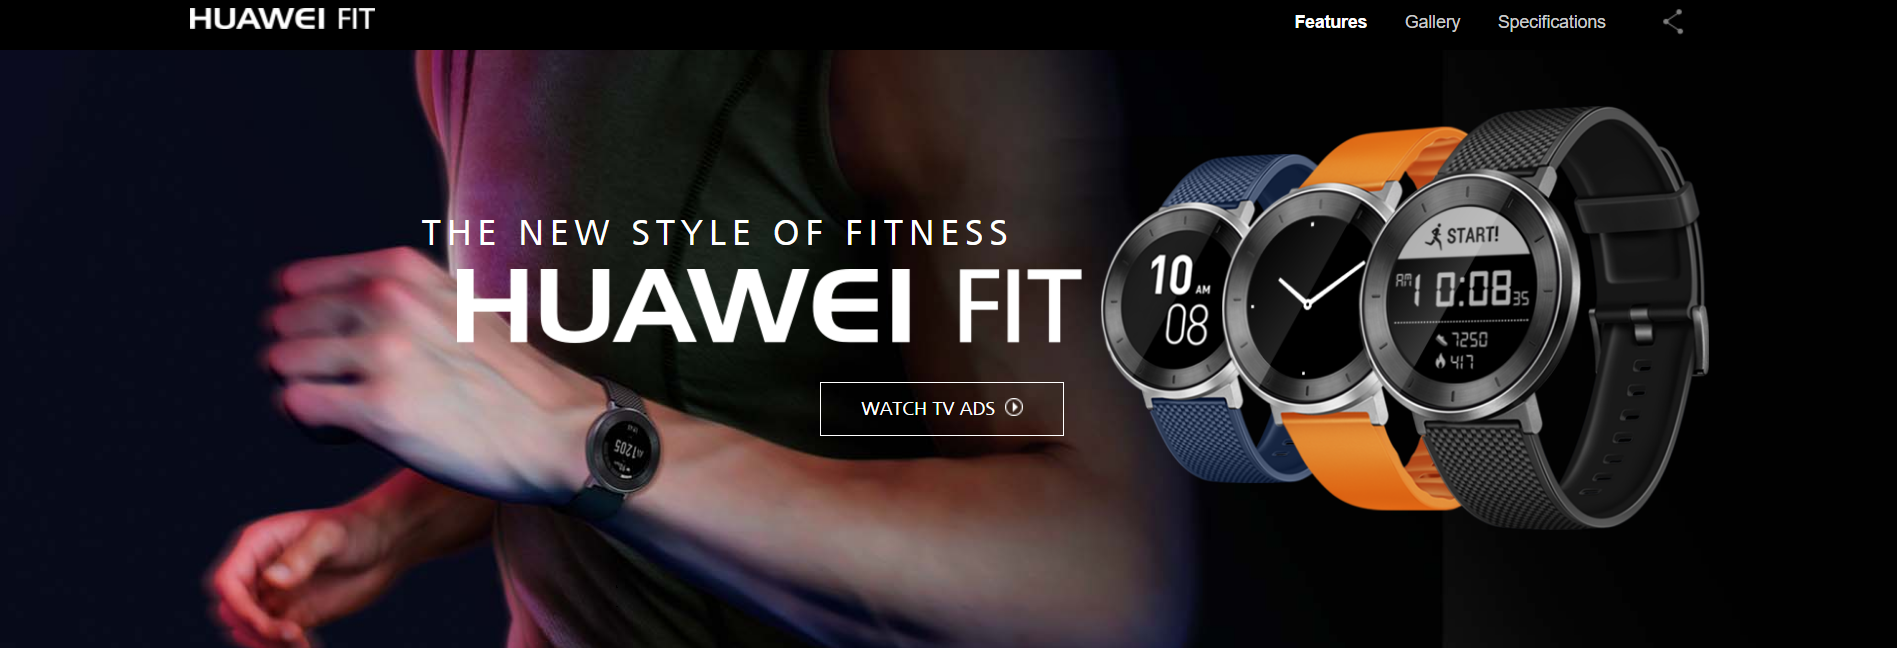 huawei fit